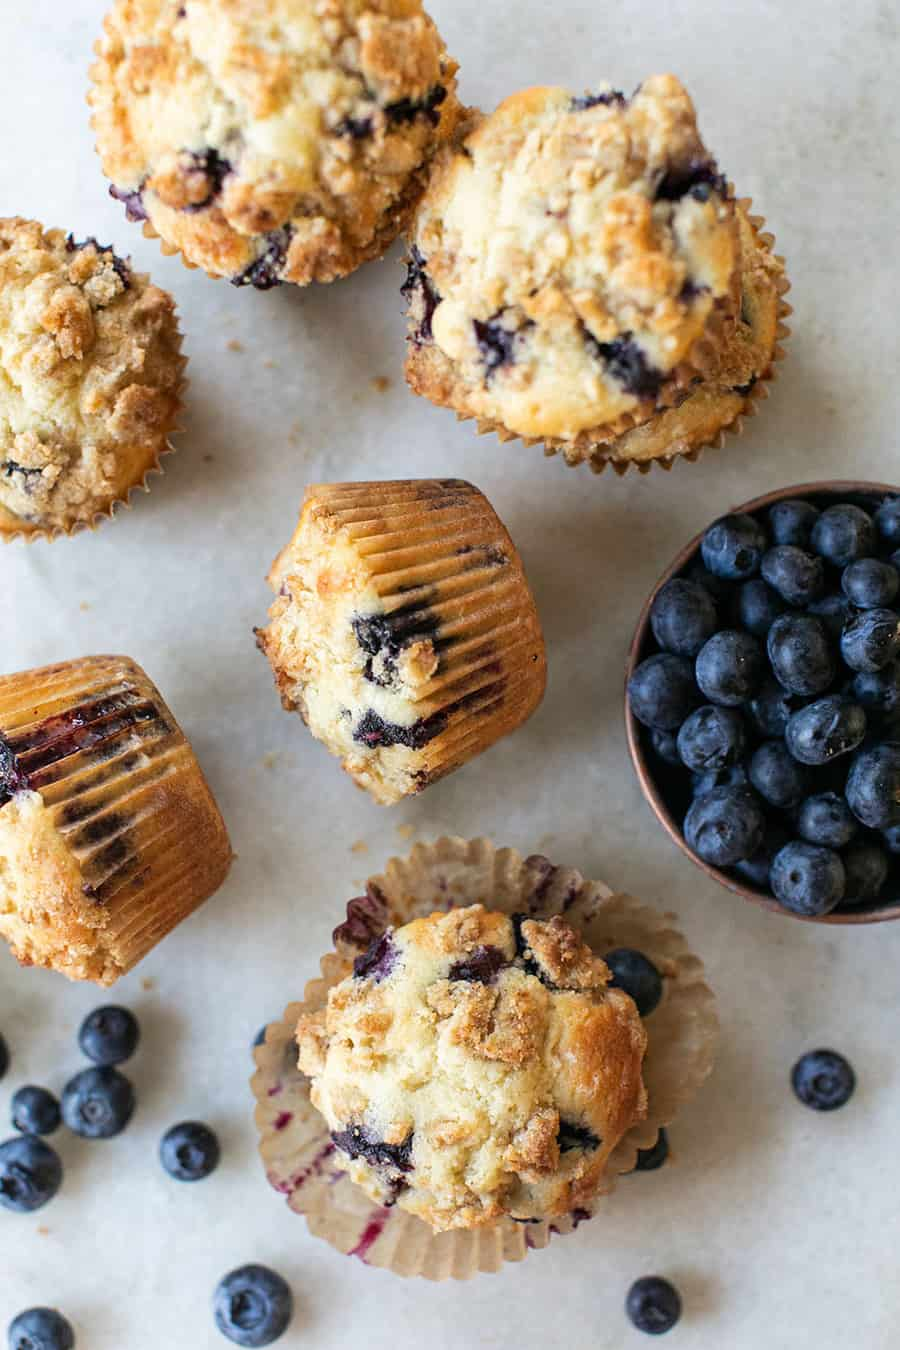 Blueberry muffins on a marble table with fresh blueberries